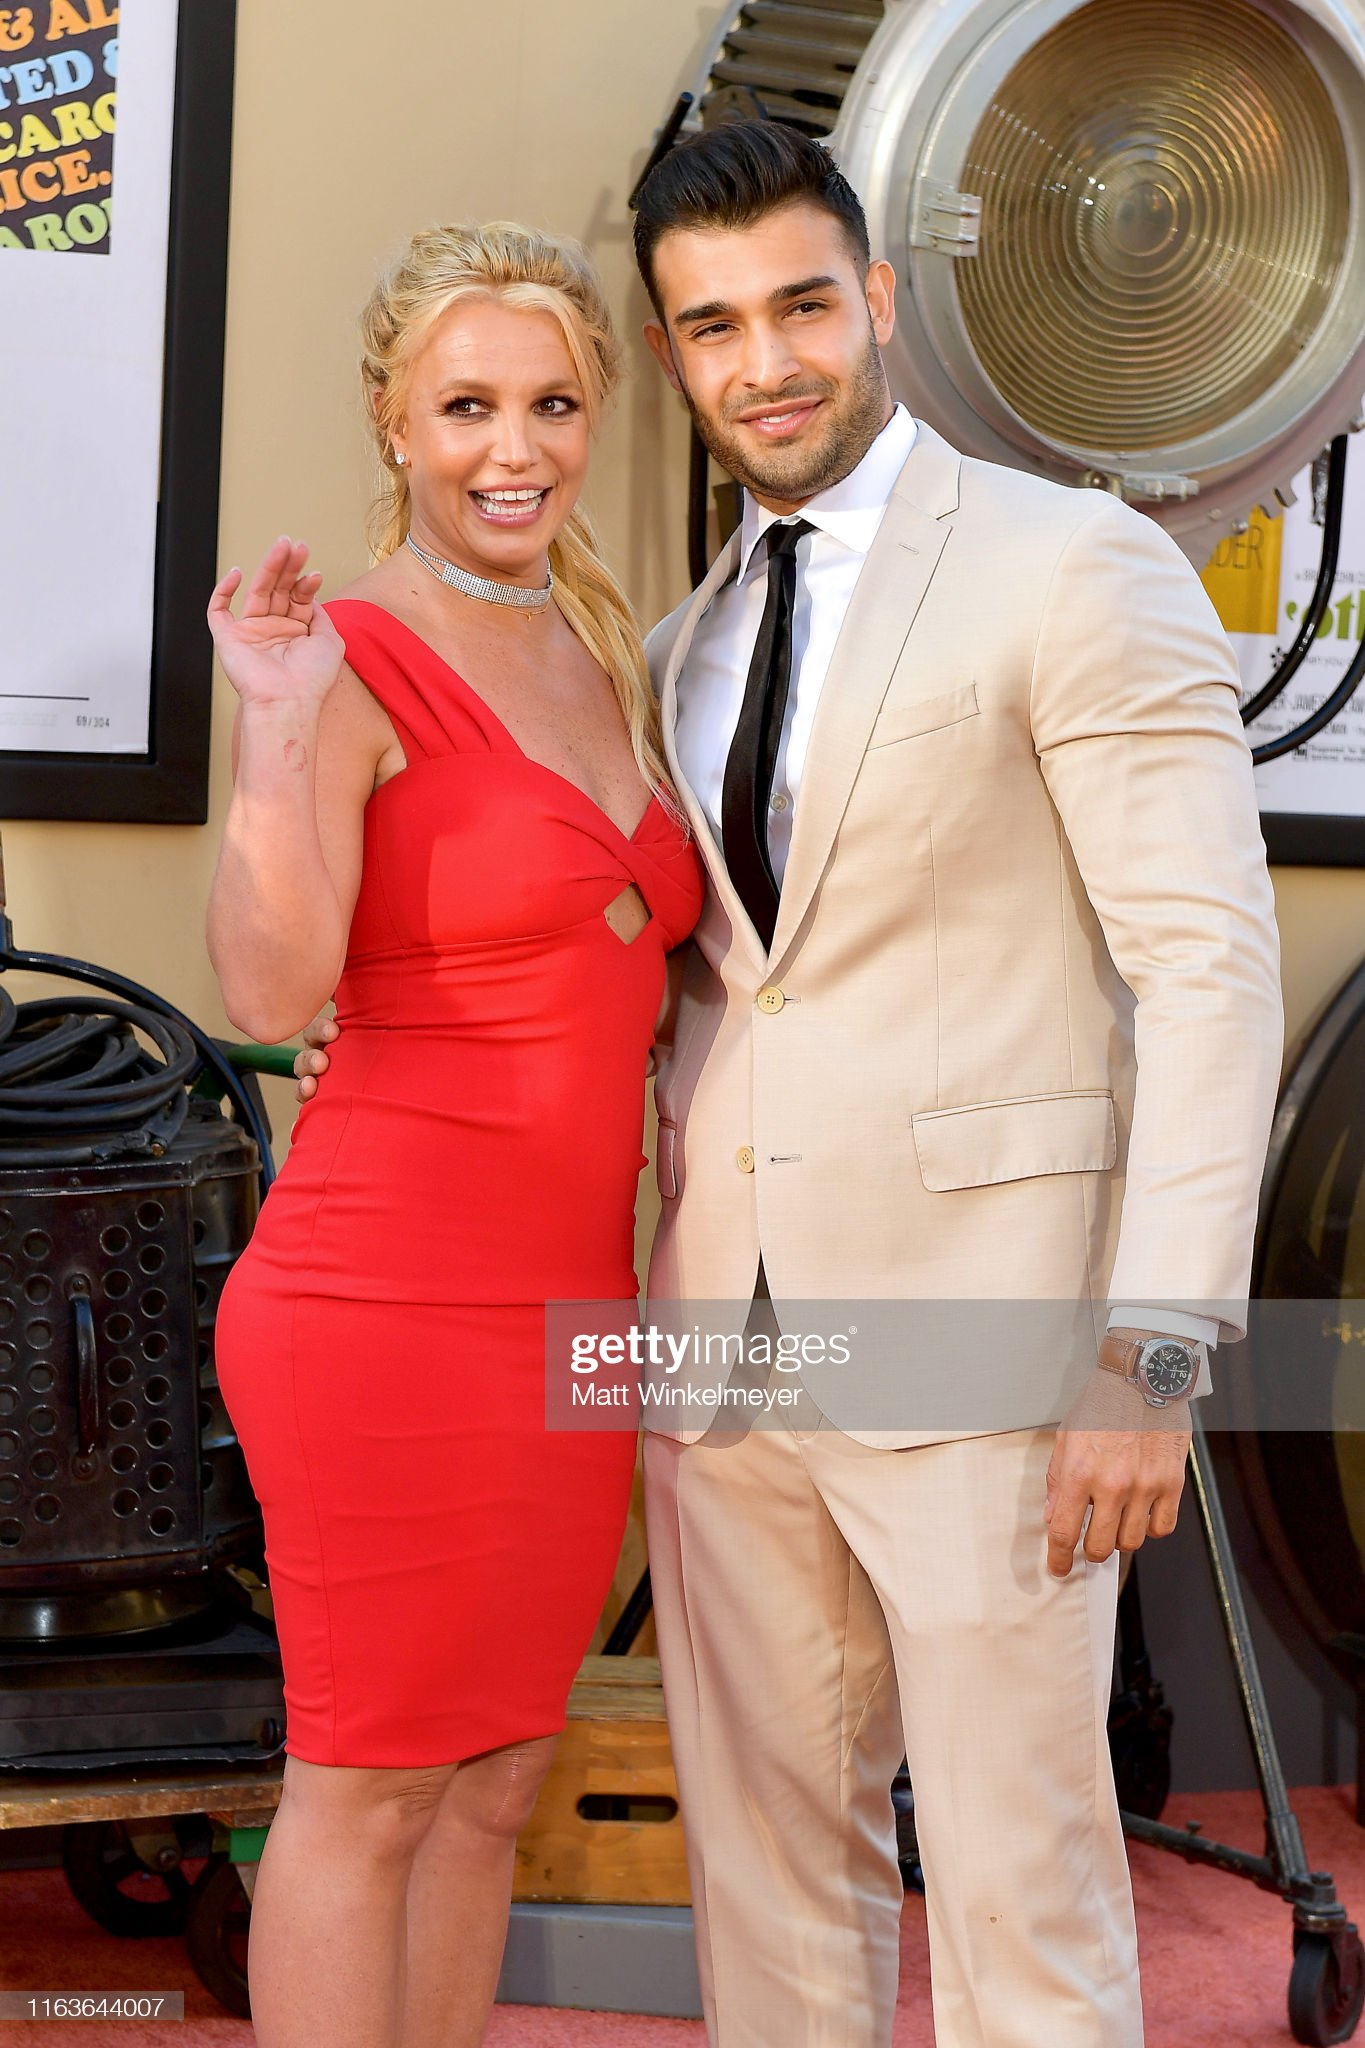 britney-spears-and-sam-asghari-attend-so